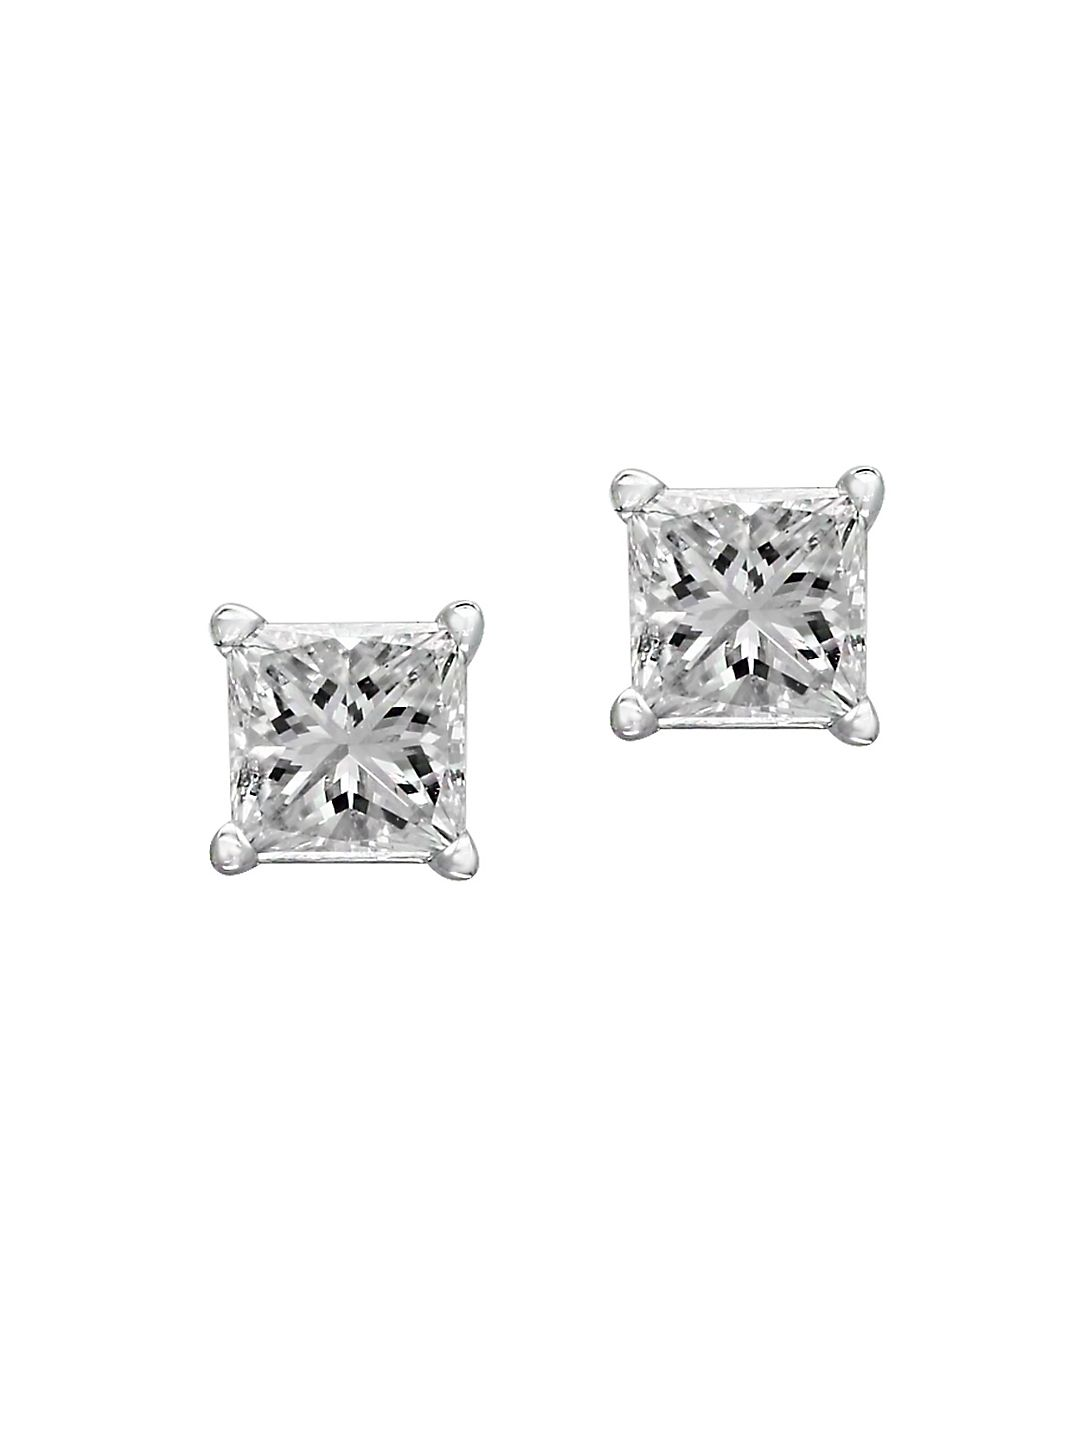 14K White Gold and Square Diamond Stud Earrings